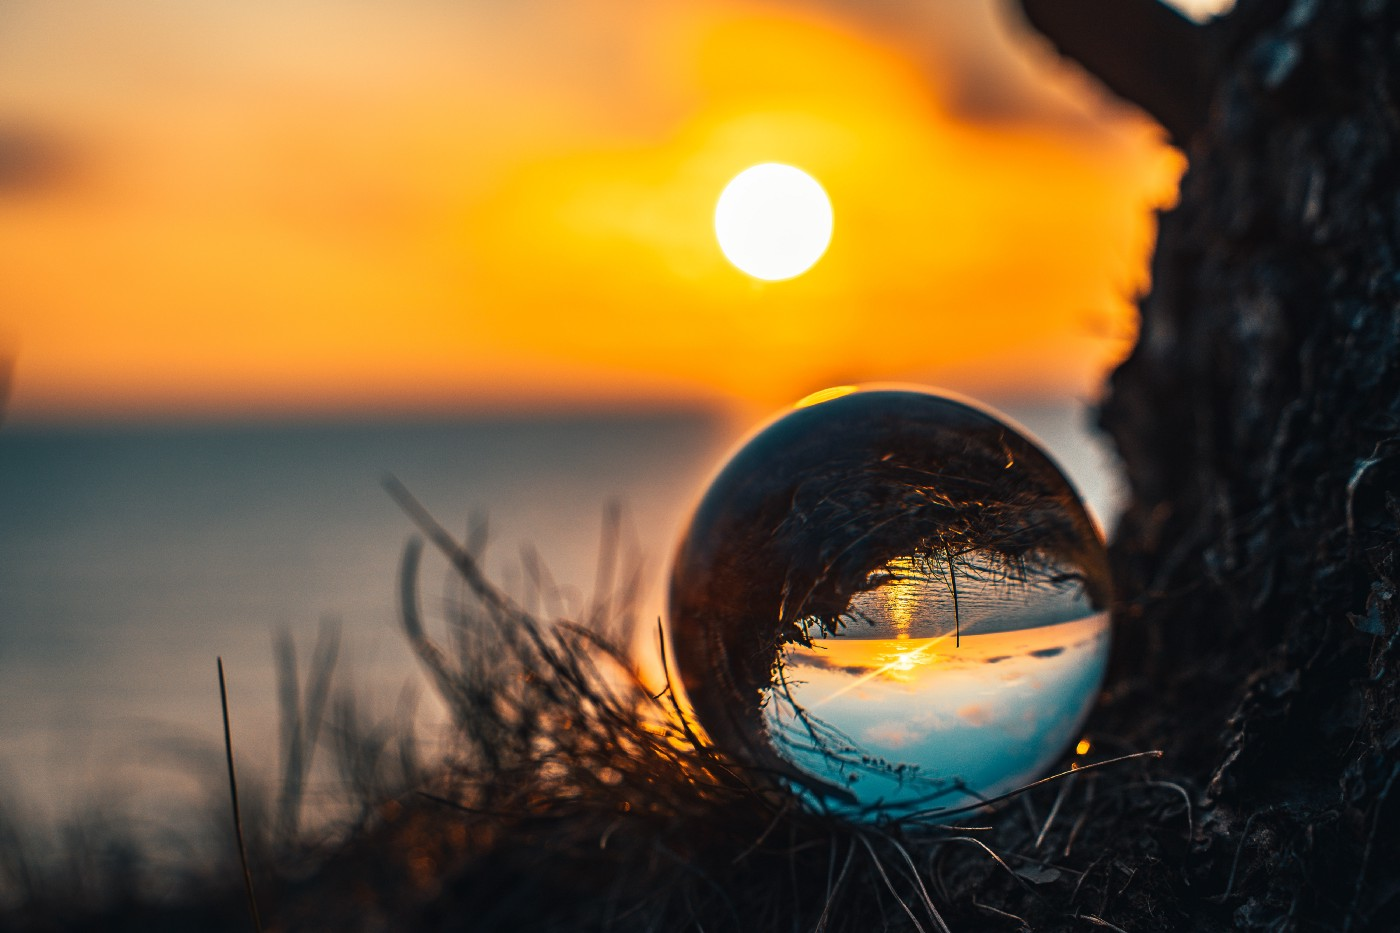 A sunrise over the ocean on a beach with a drop of water reflecting the same